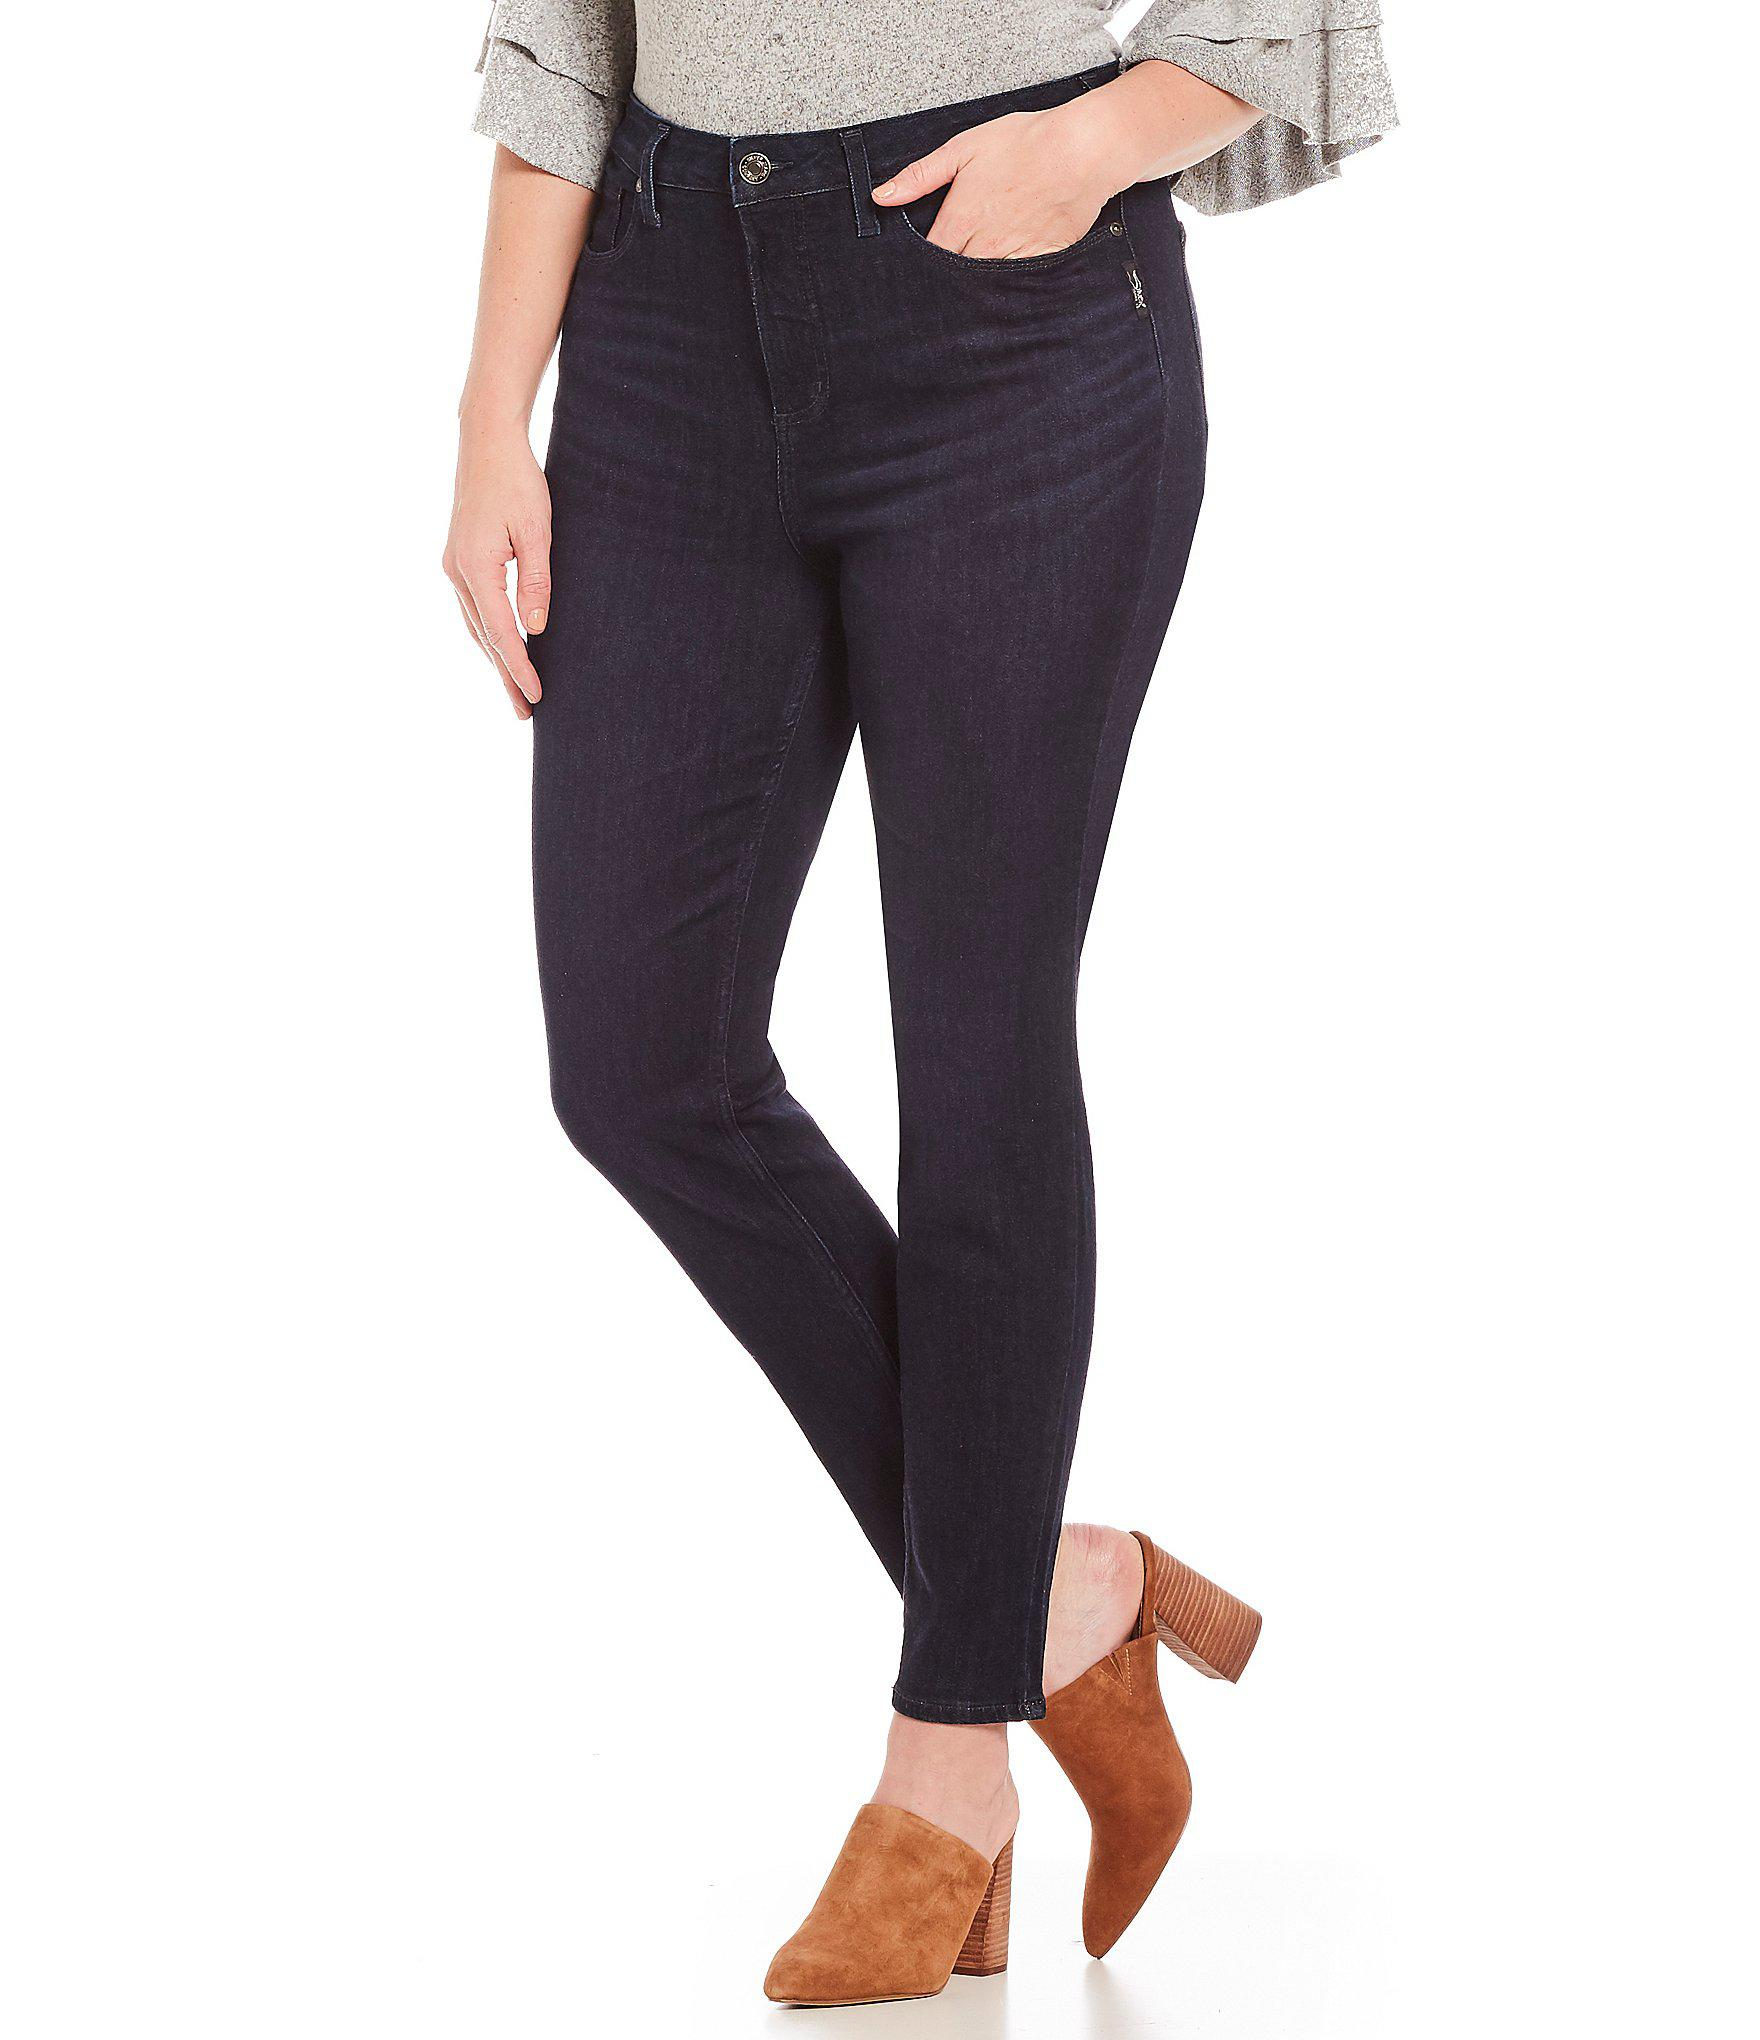 b46787bf Lyst - Silver Jeans Co. Plus Size Mazy Skinny Jeans in Blue - Save ...